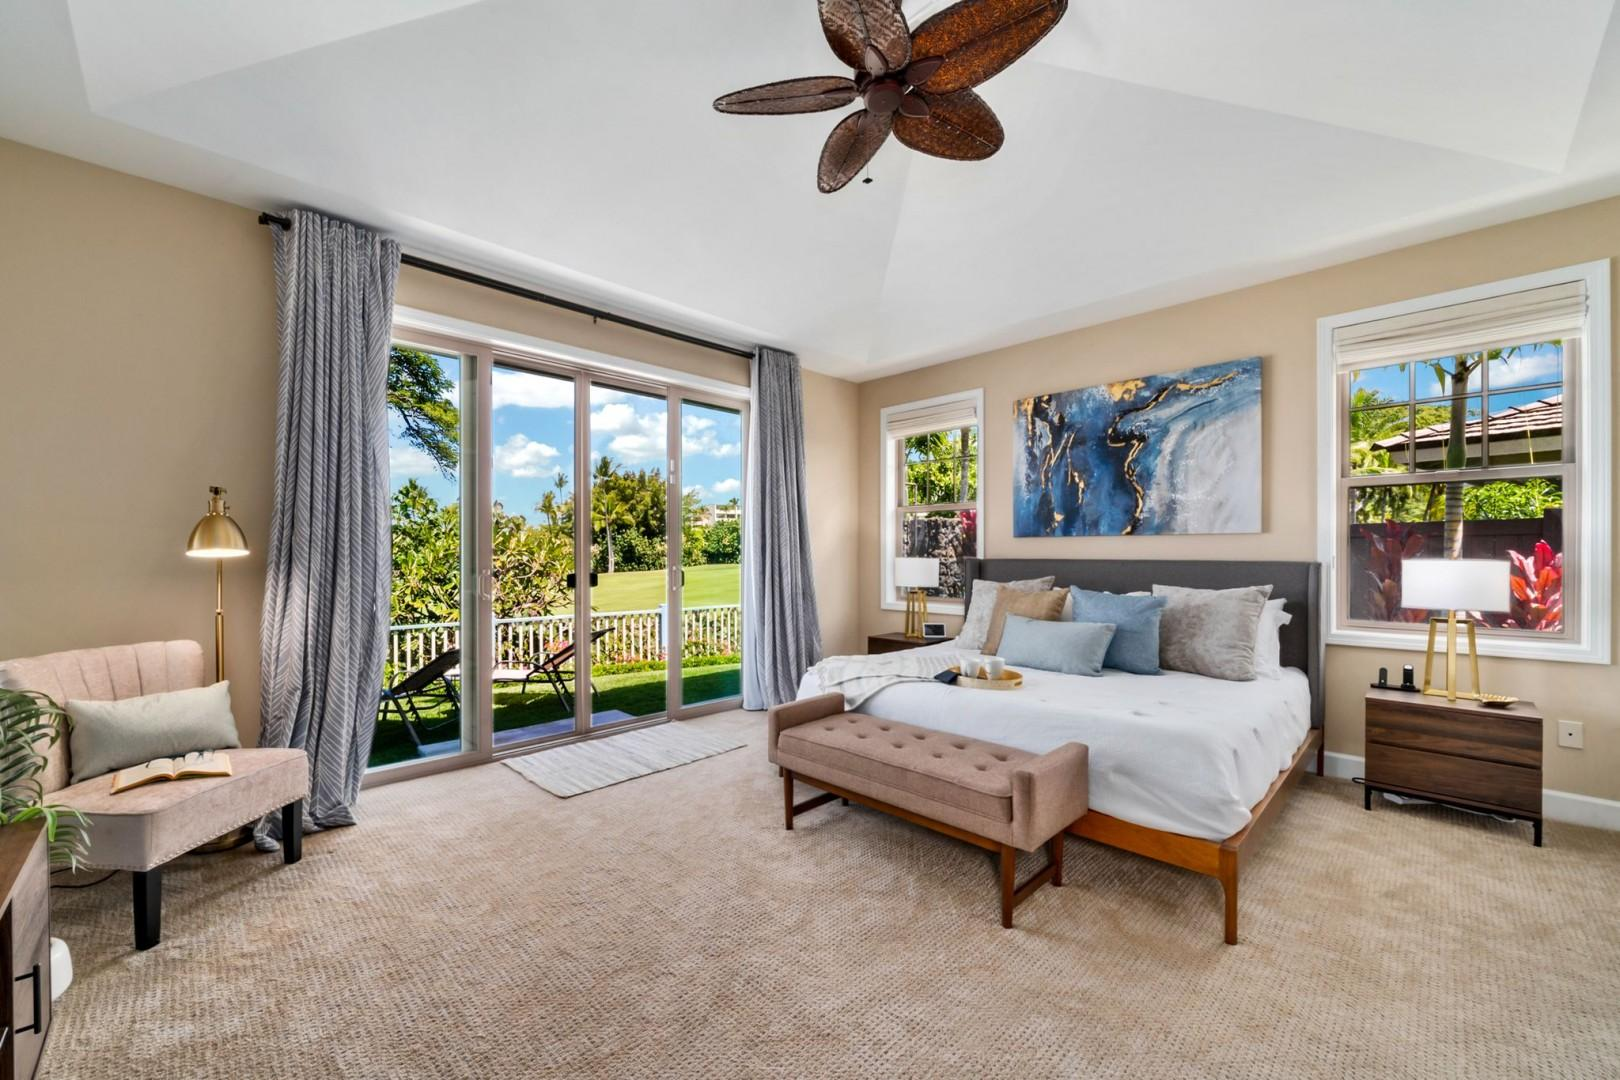 Master bedroom equipped with King bed, A/C, Lanai access, TV , and work space